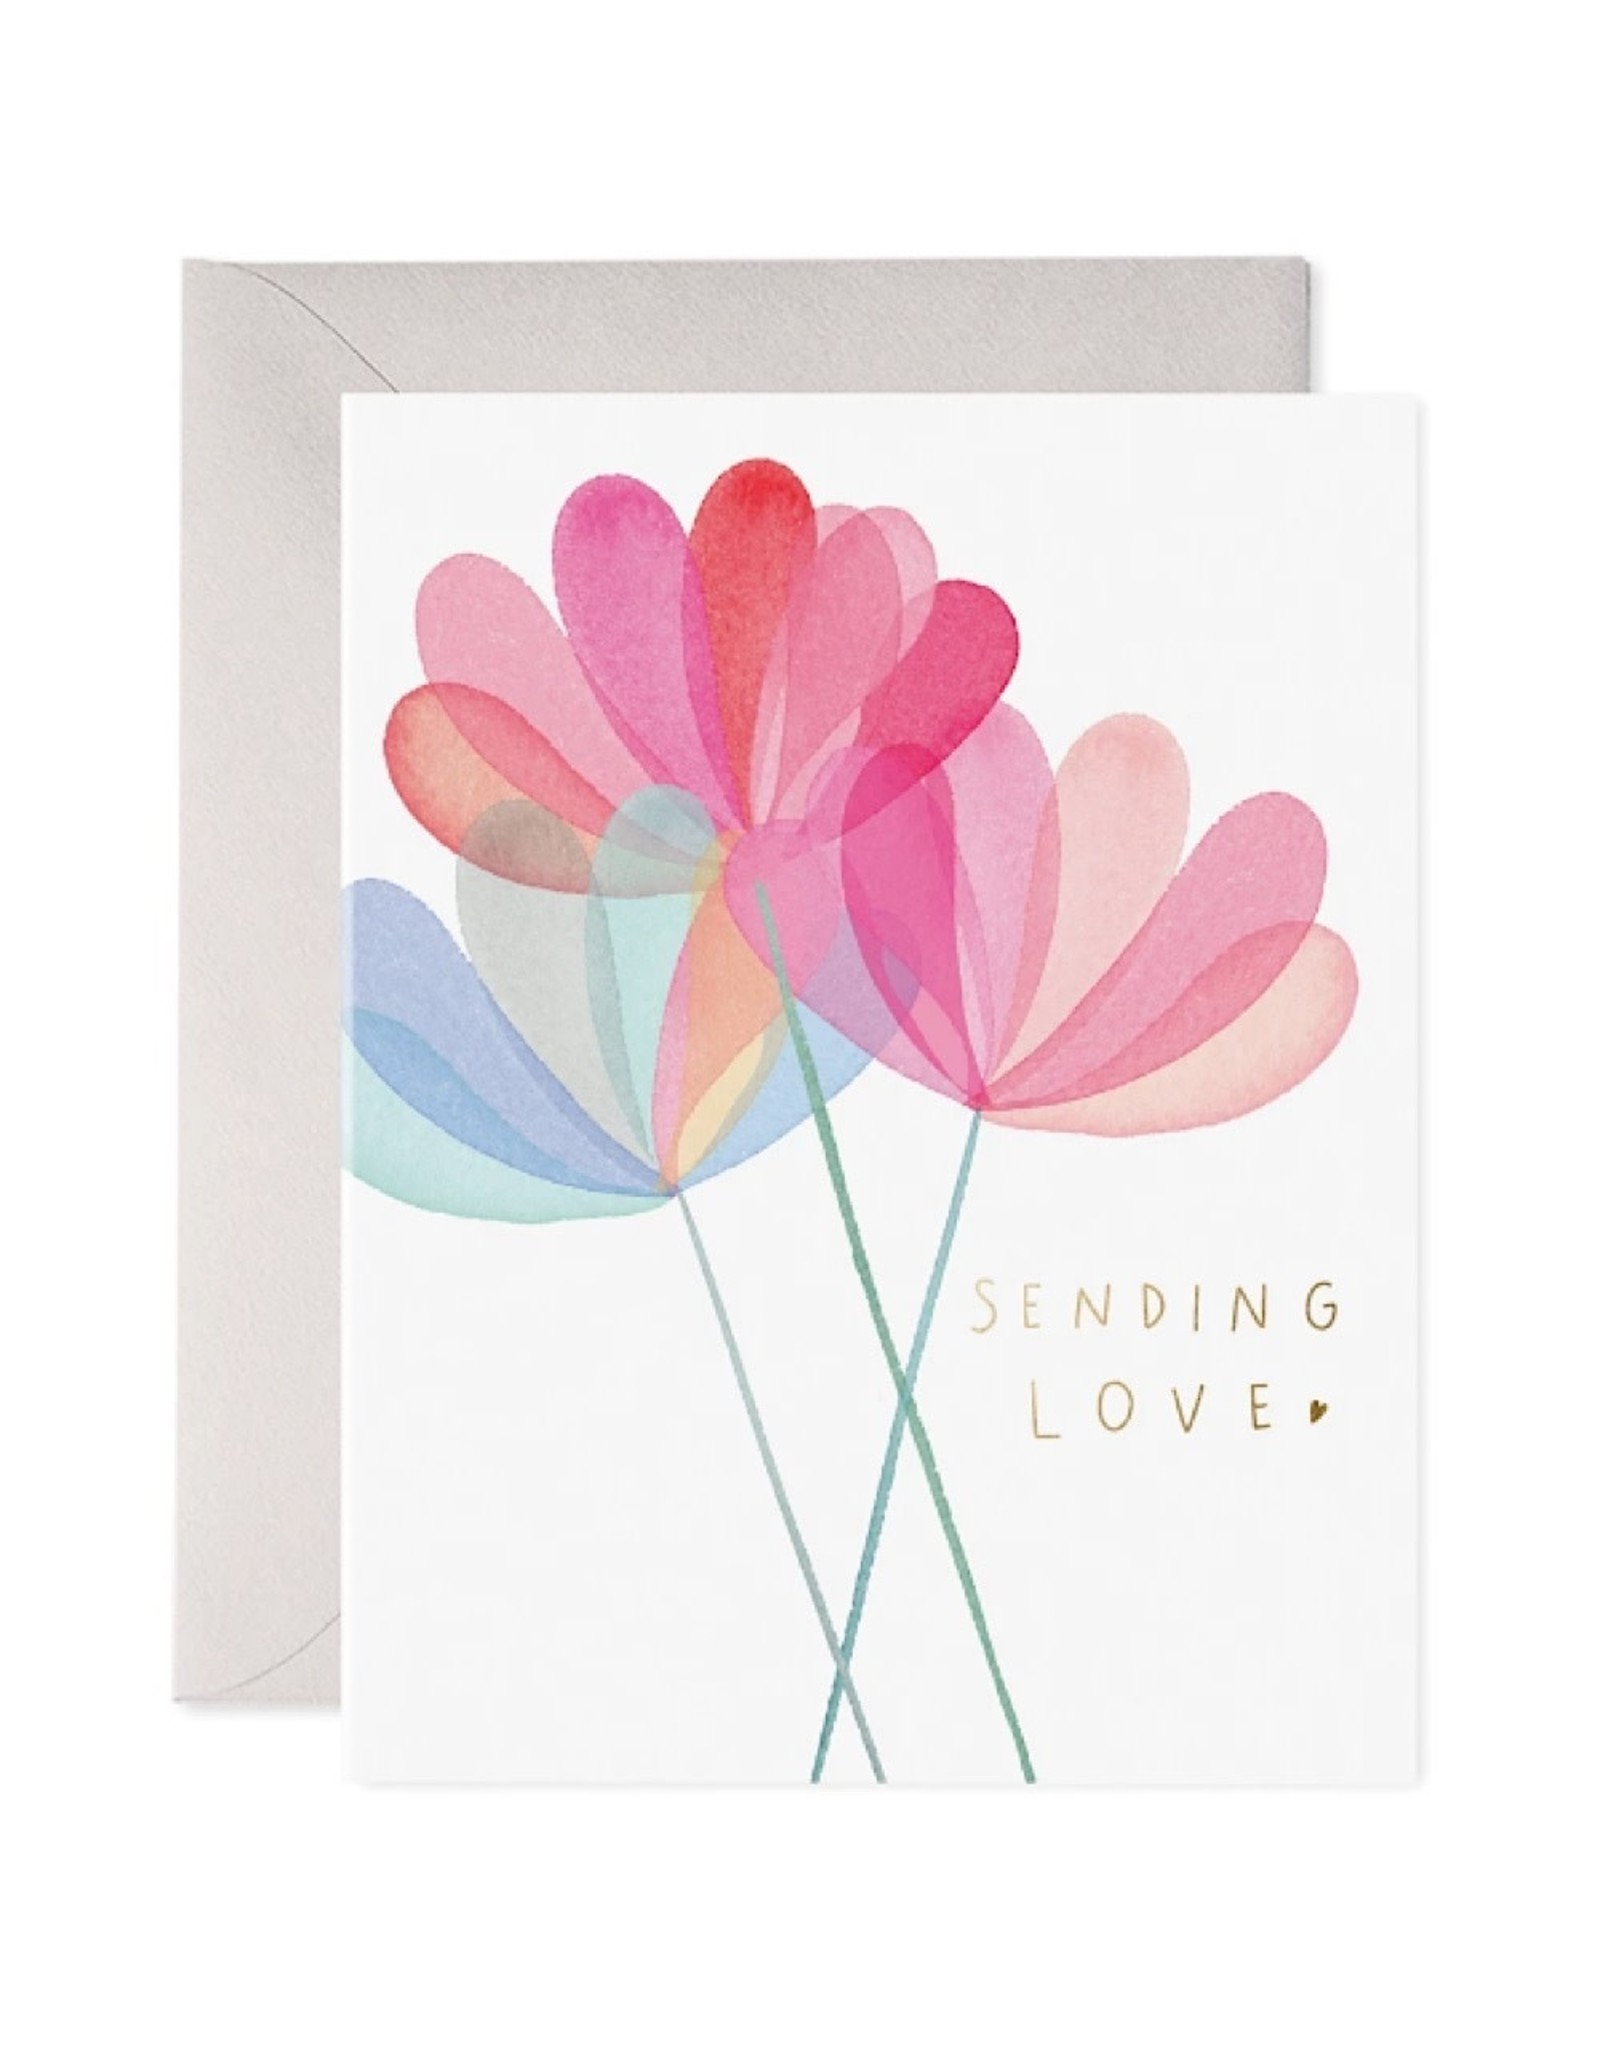 Love/Friend Card: Sending Love